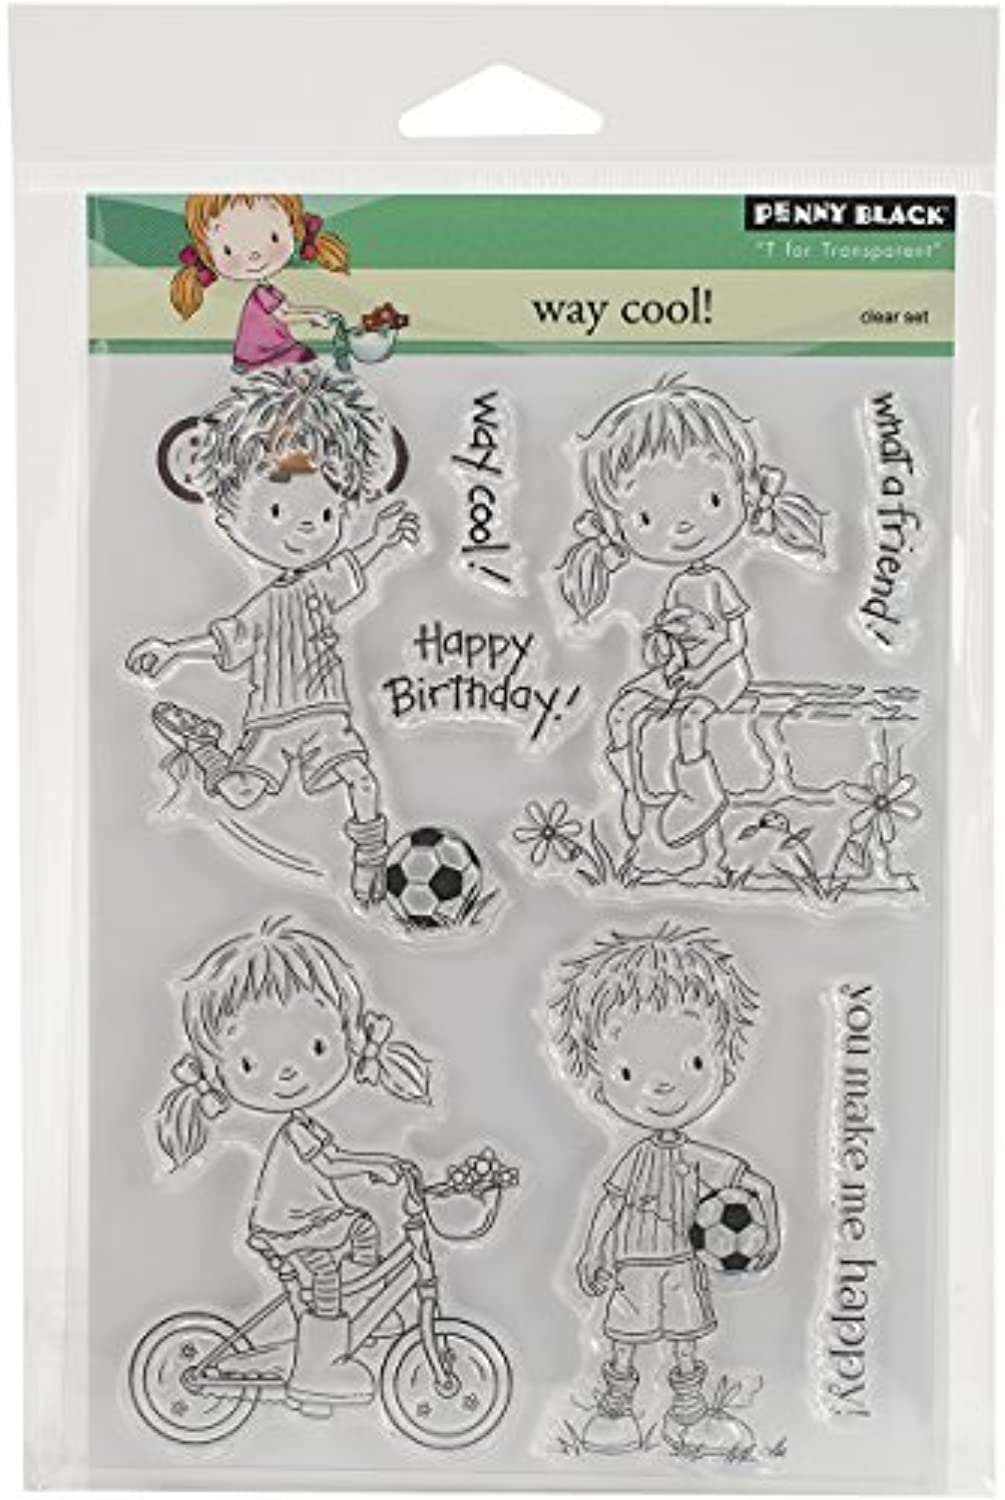 Penny Black Way Cool Clear Stamps Sheet, 5 x 6.5 by Penny Black